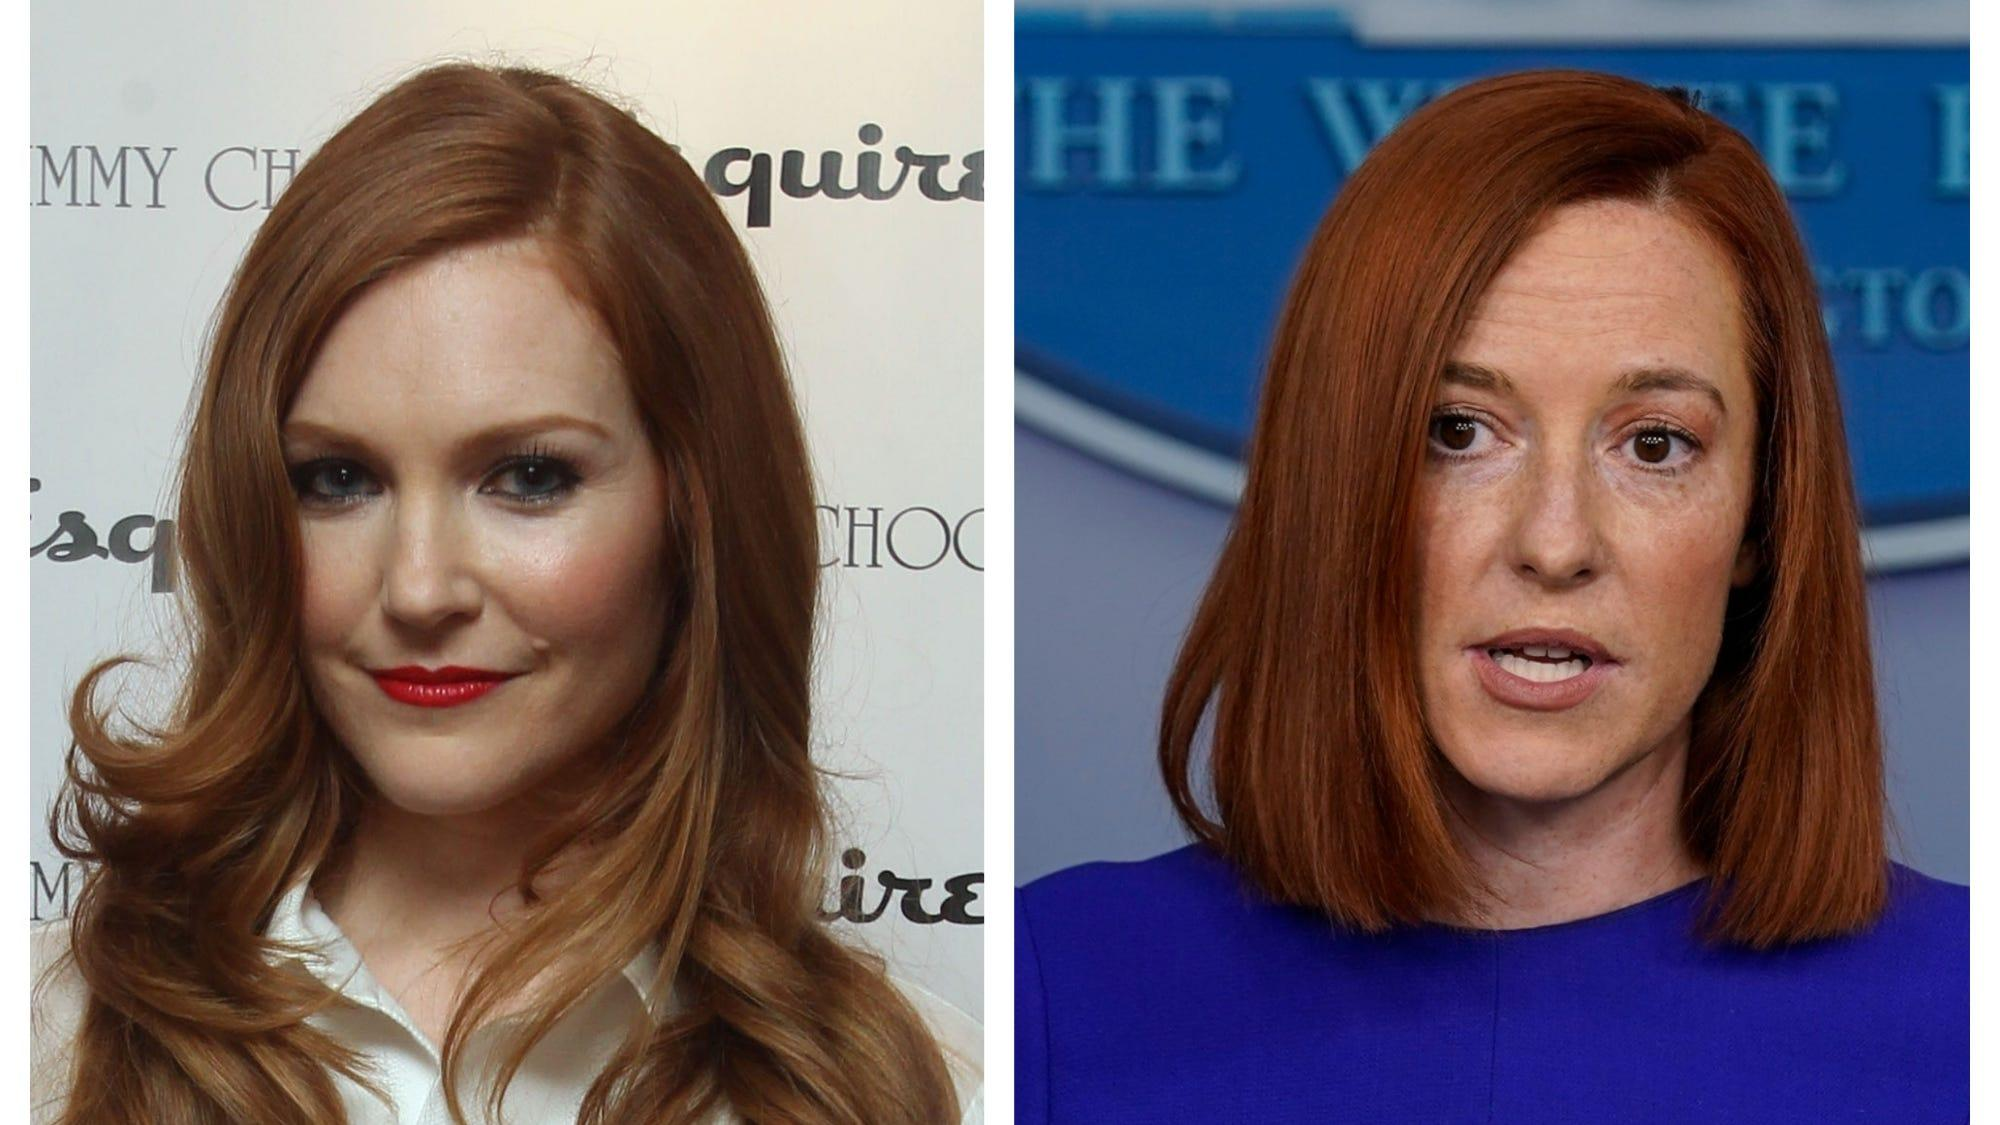 Scandal's Darby Stanchfield offers tips to White House press secretary Jen Psaki